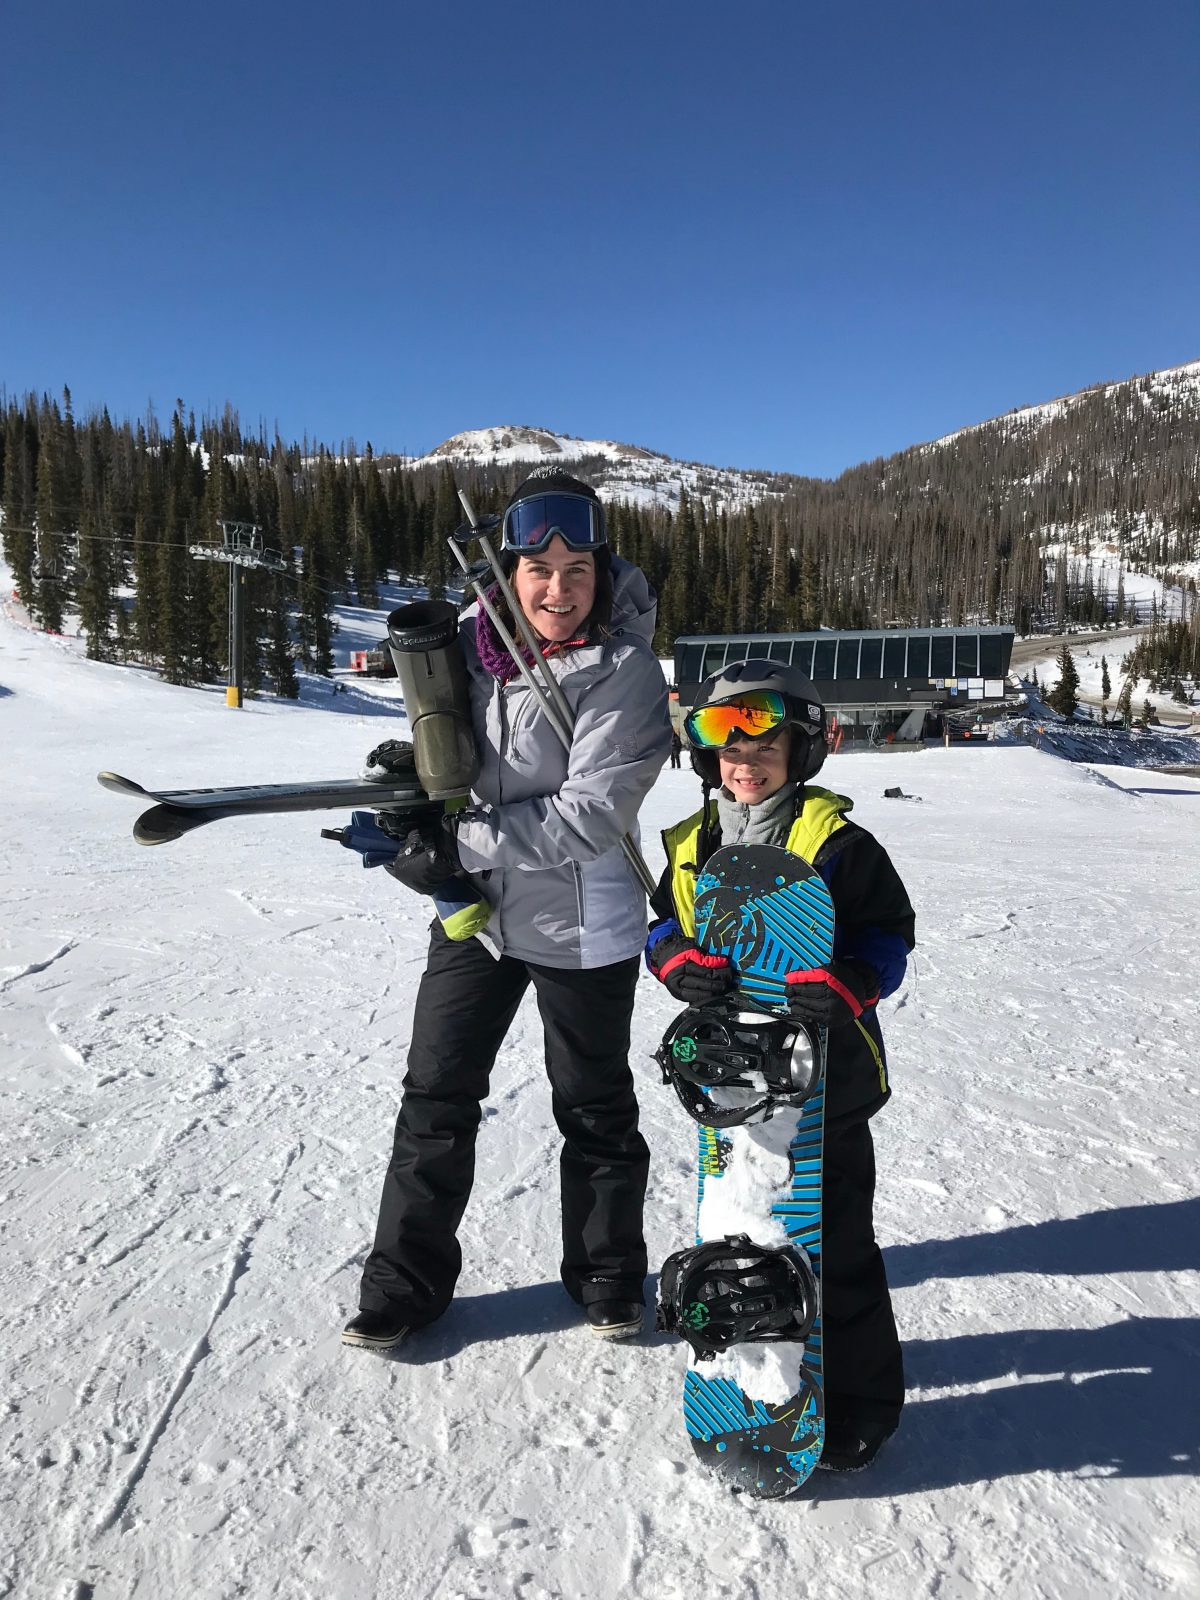 Family ski trip with toddler - snowboarding